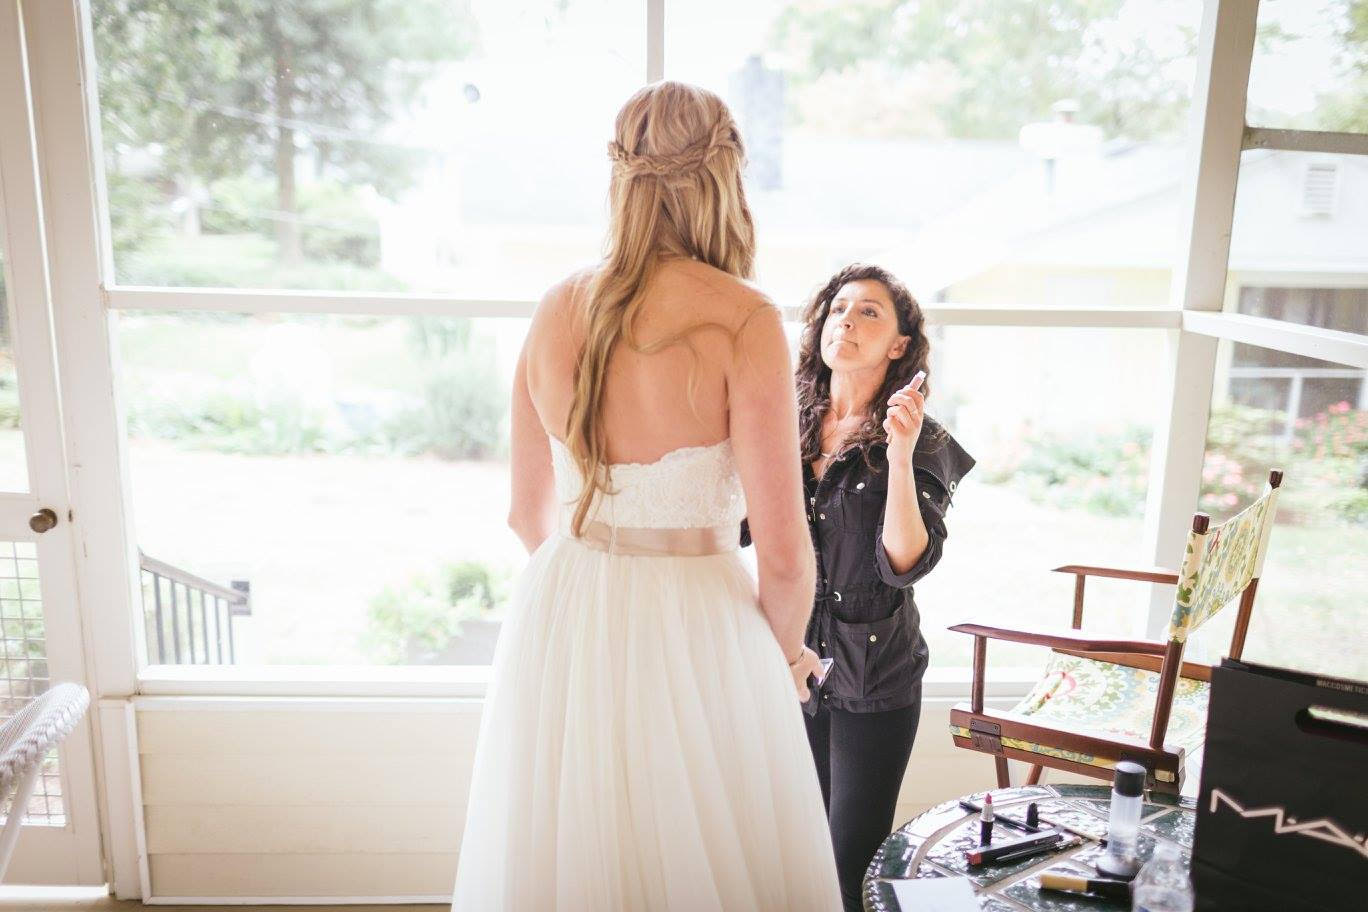 Wedding Hair and Makeup Services by Salon Veritas in Downtown Raleigh NC